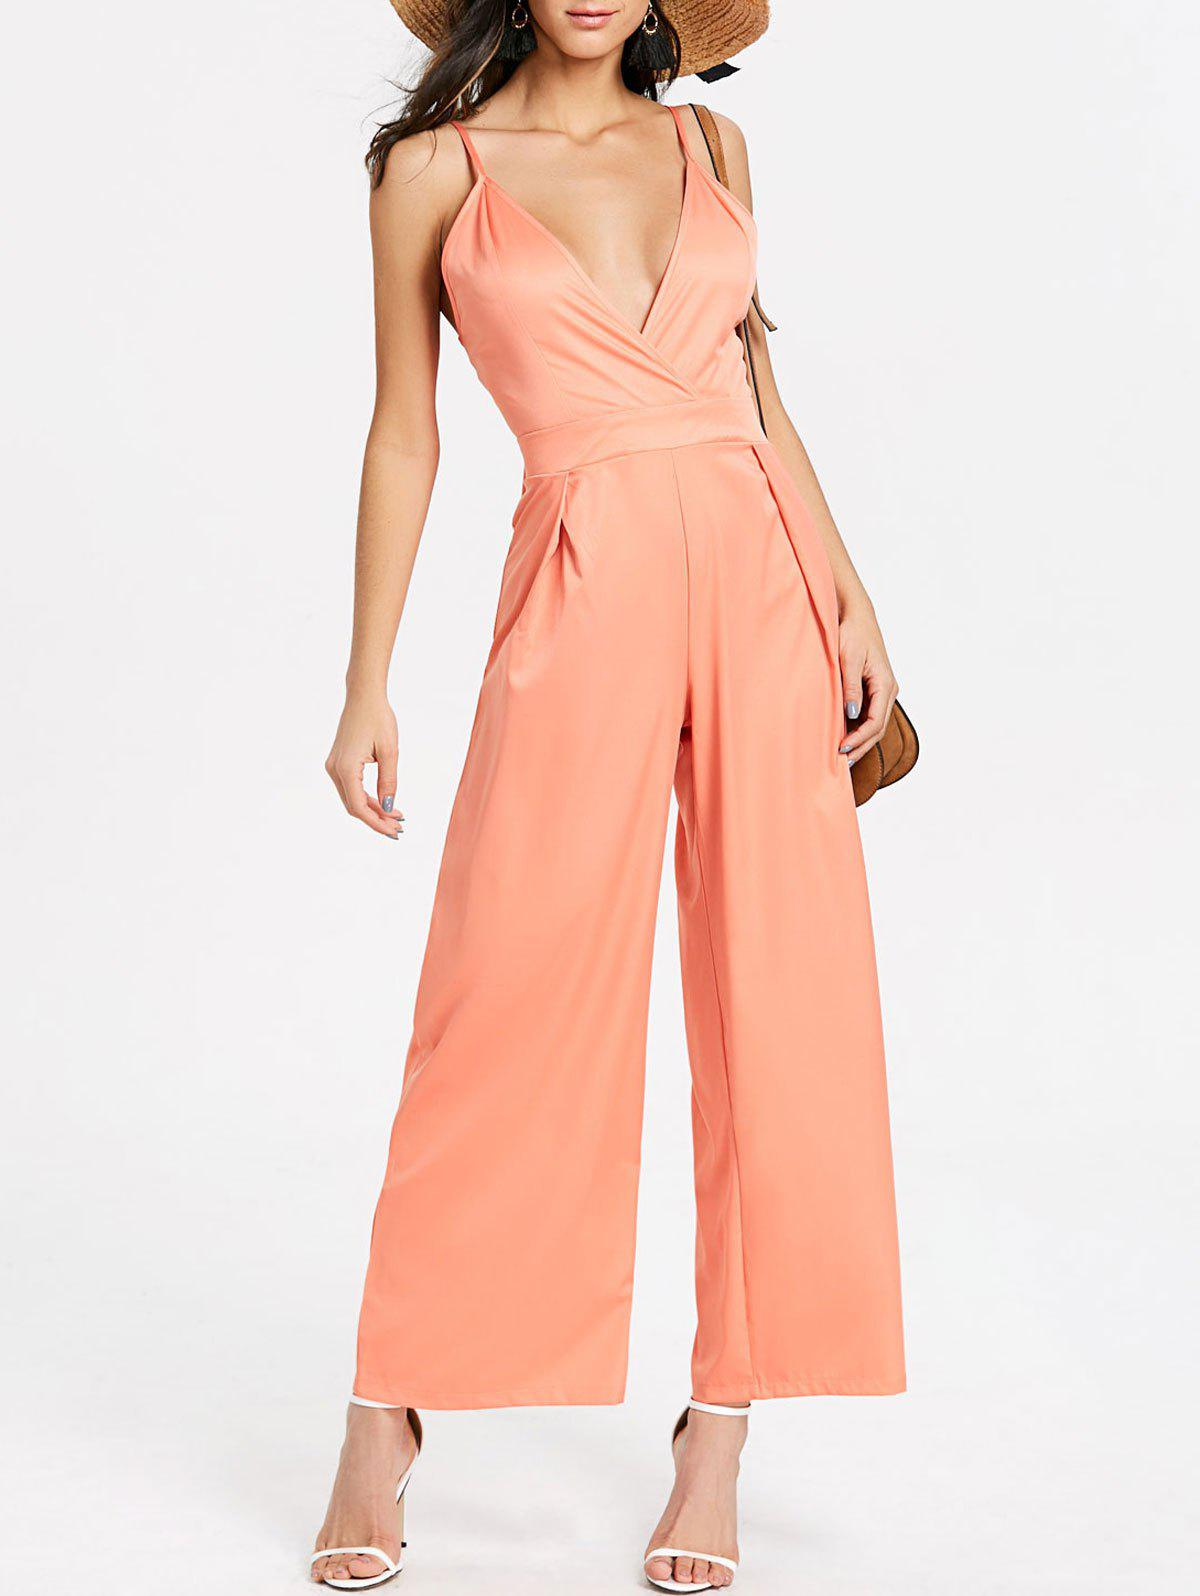 Backless Spaghetti Strap Jumpsuit